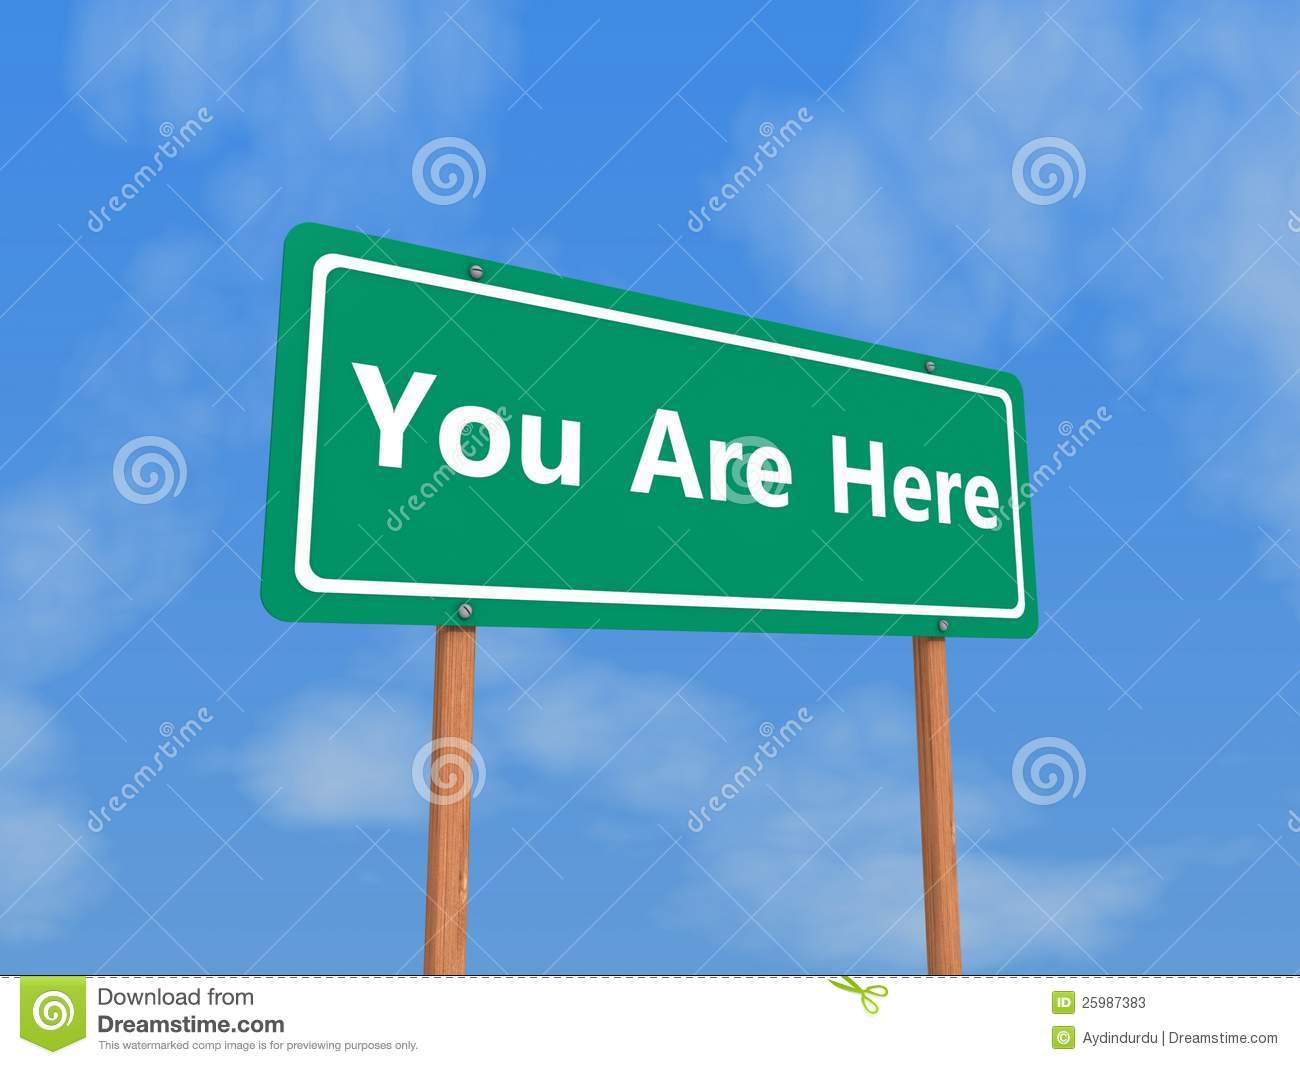 You Are Here Sign Stock Image. Image Of Location, Green